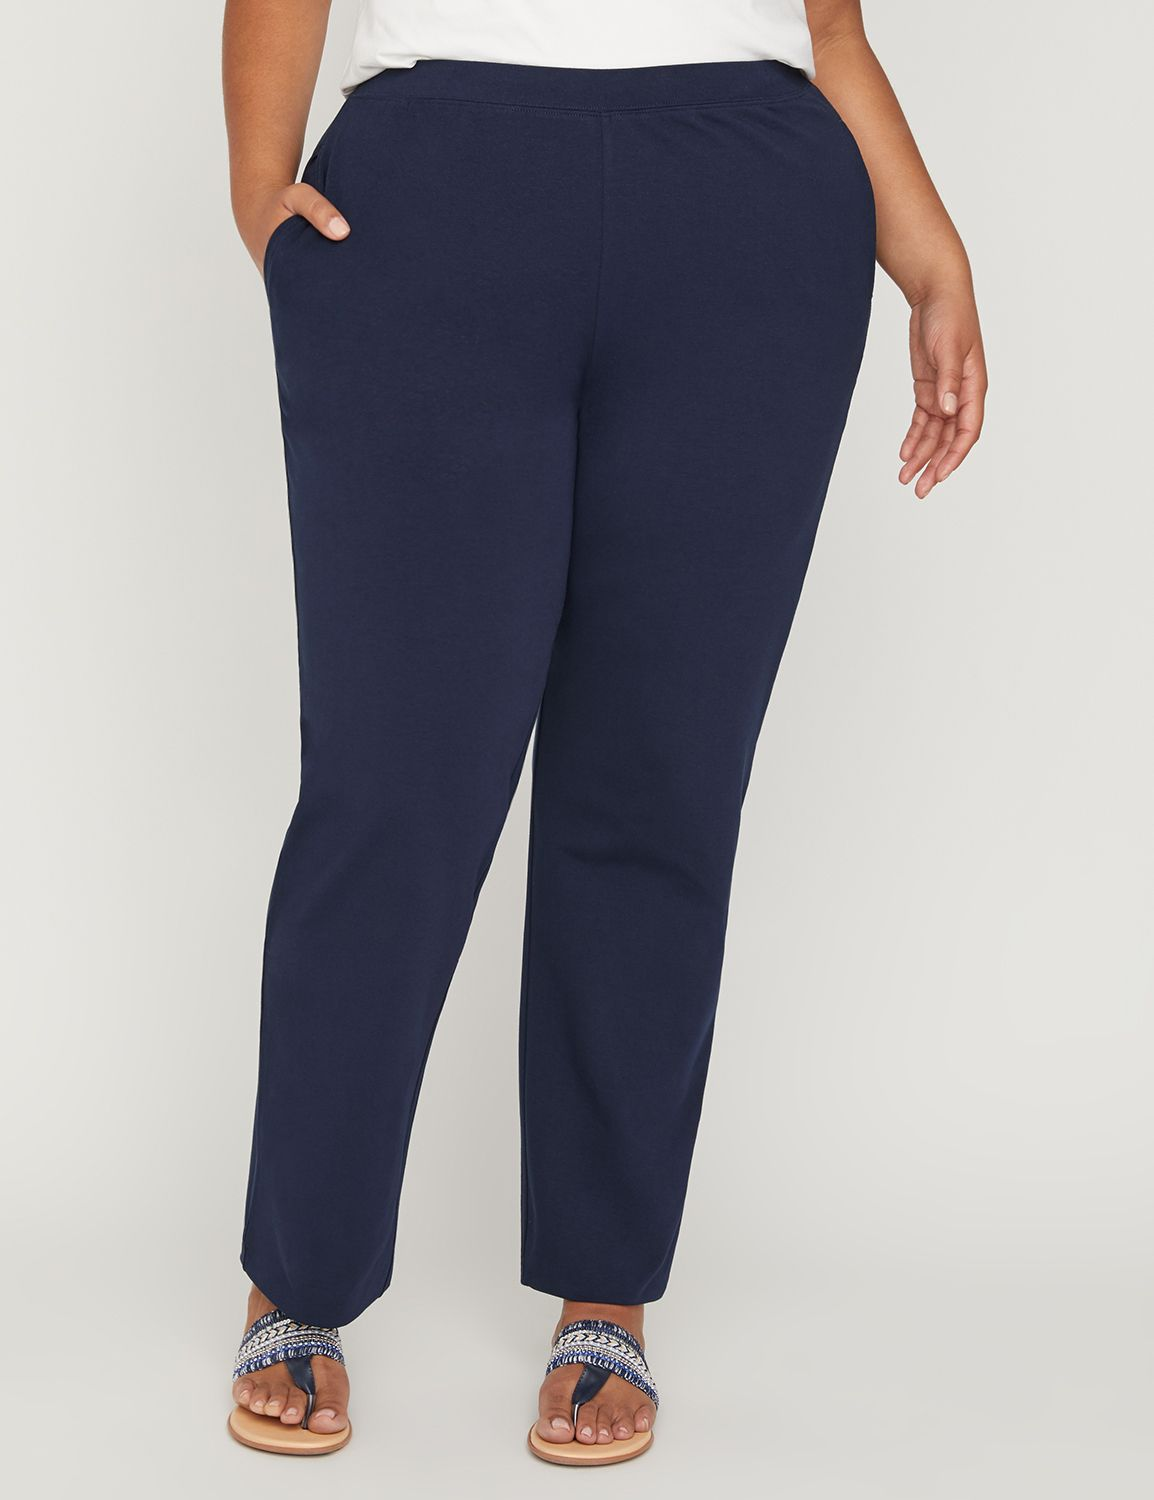 Suprema Knit Pant (Classic Colors) Suprema Knit Pant (Classic Colors) MP-201353057